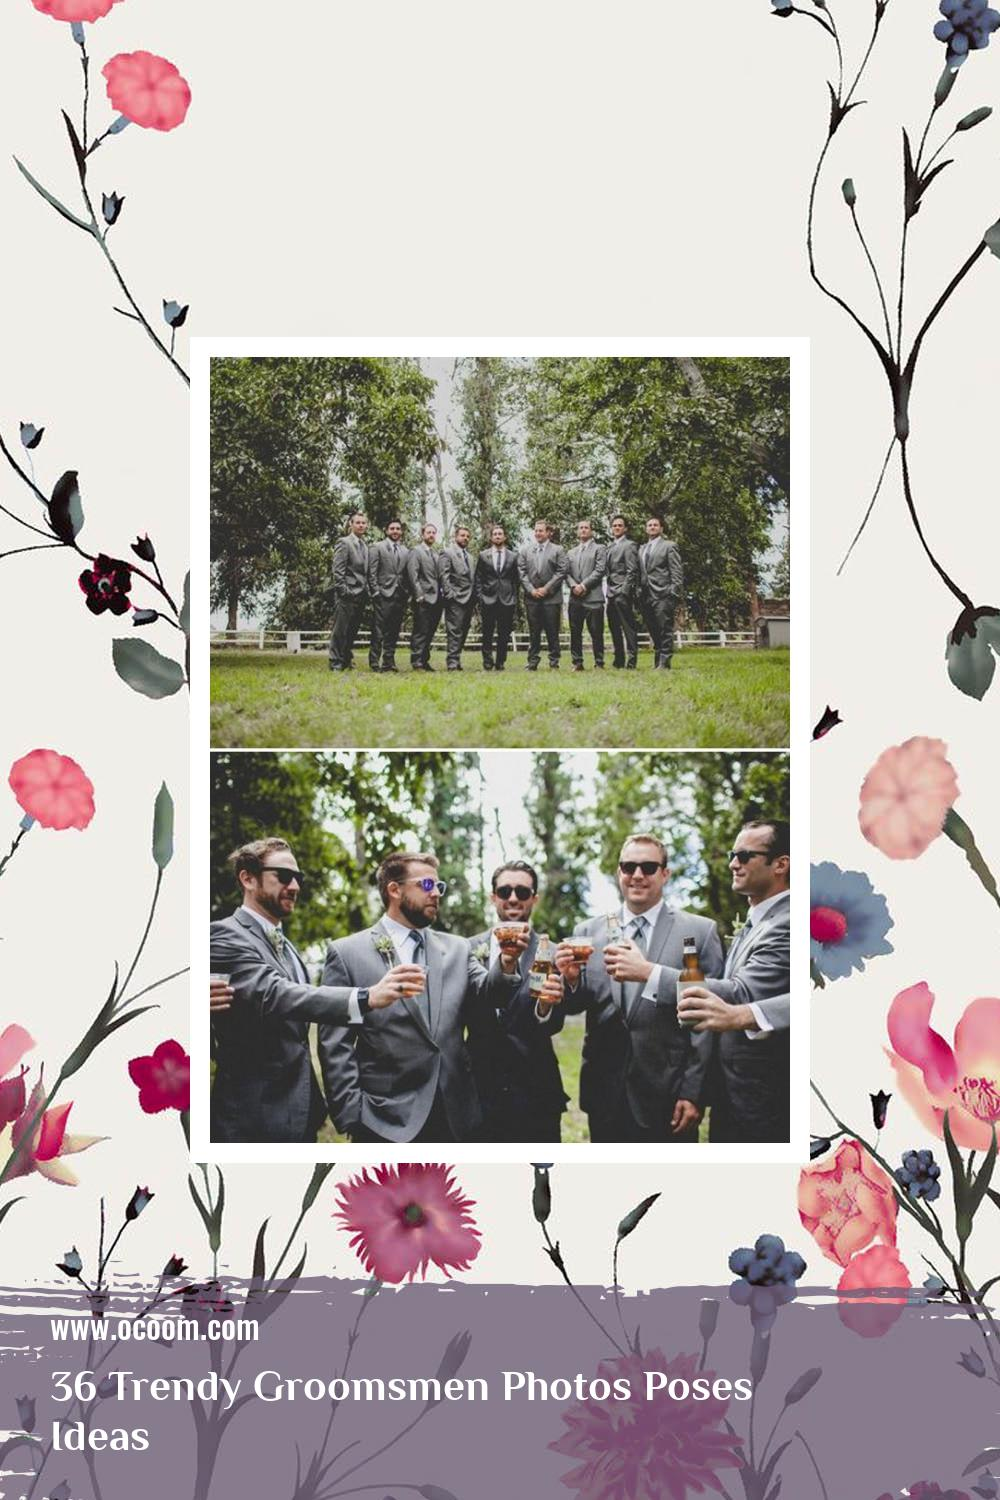 36 Trendy Groomsmen Photos Poses Ideas 20